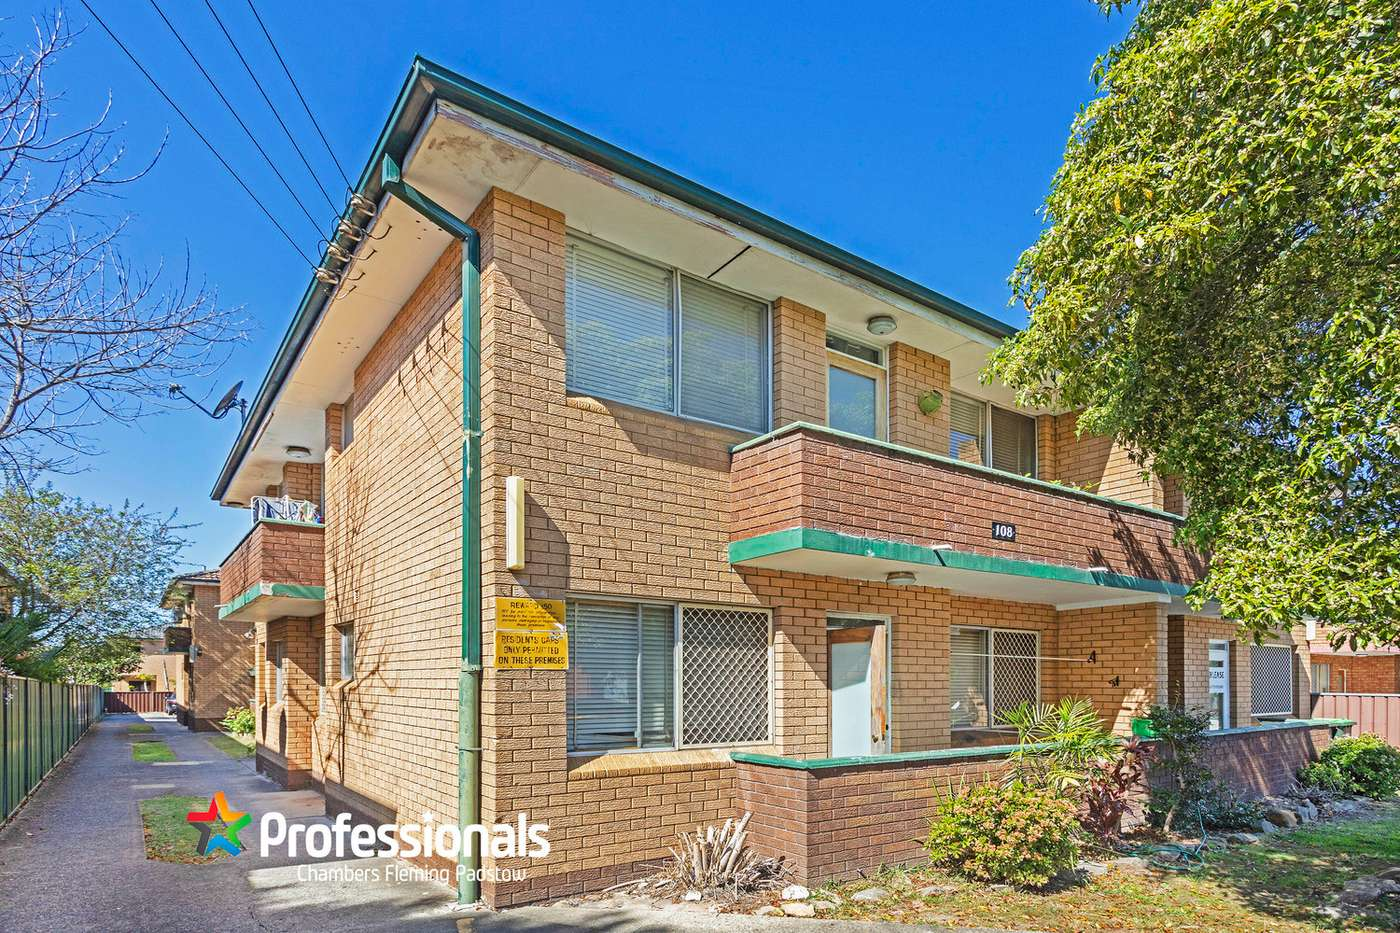 Main view of Homely unit listing, 12/108 Victoria Road, Punchbowl, NSW 2196